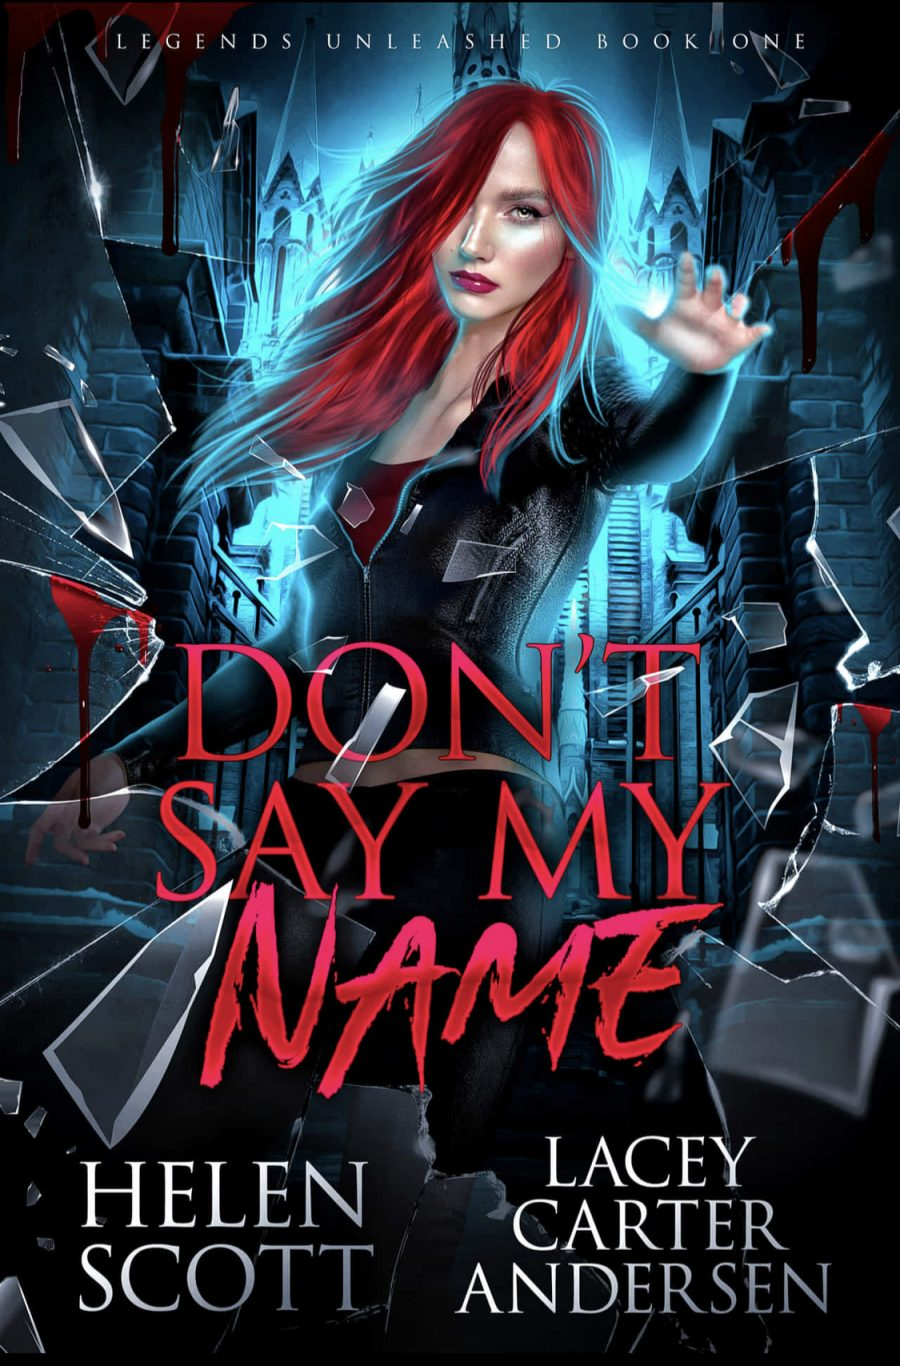 Don't Say My Name by Helen Scott & Lacey Carter Anderson - A Book Review #BookReview #PNR #MediumBurn #RH #KindleUnlimited #KU